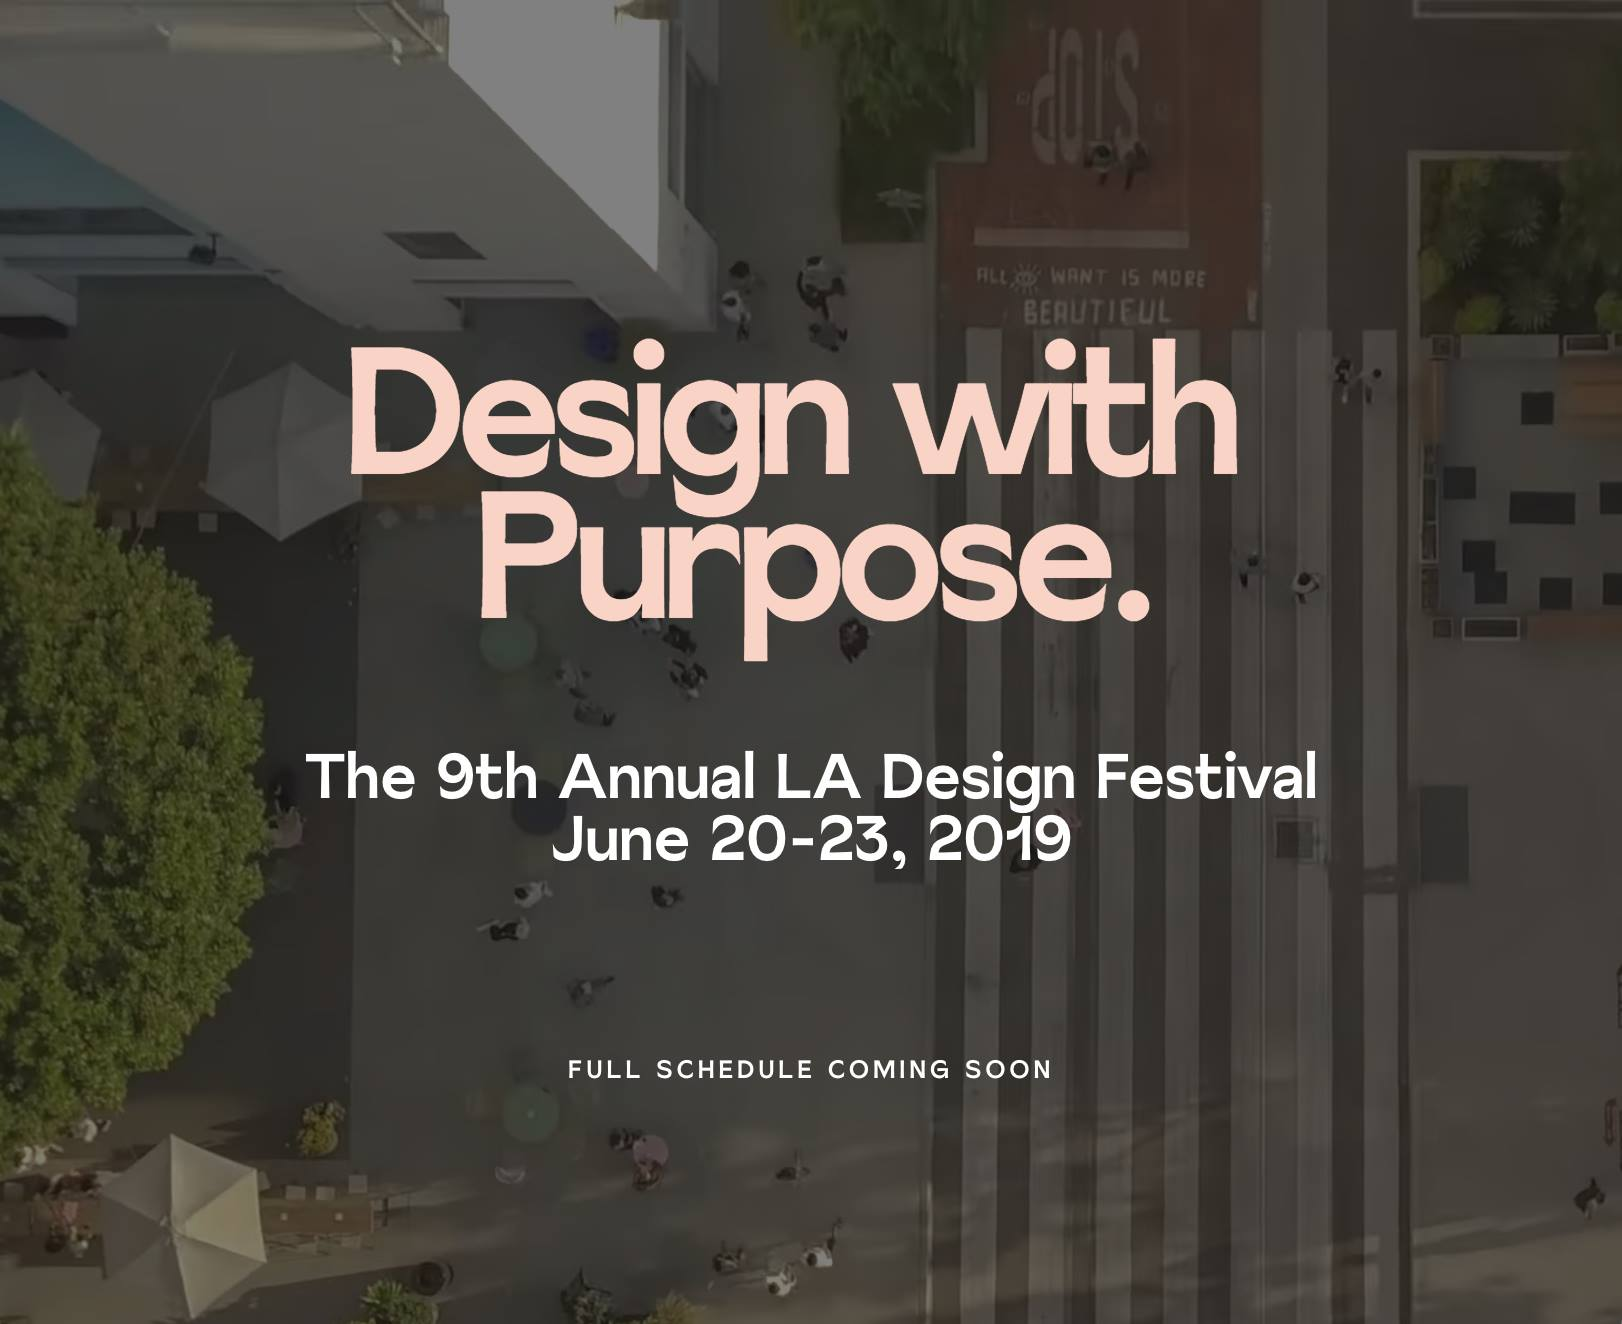 Future of Women brings their traveling breakfast series to the LA Design Festival. - June 11, 2019